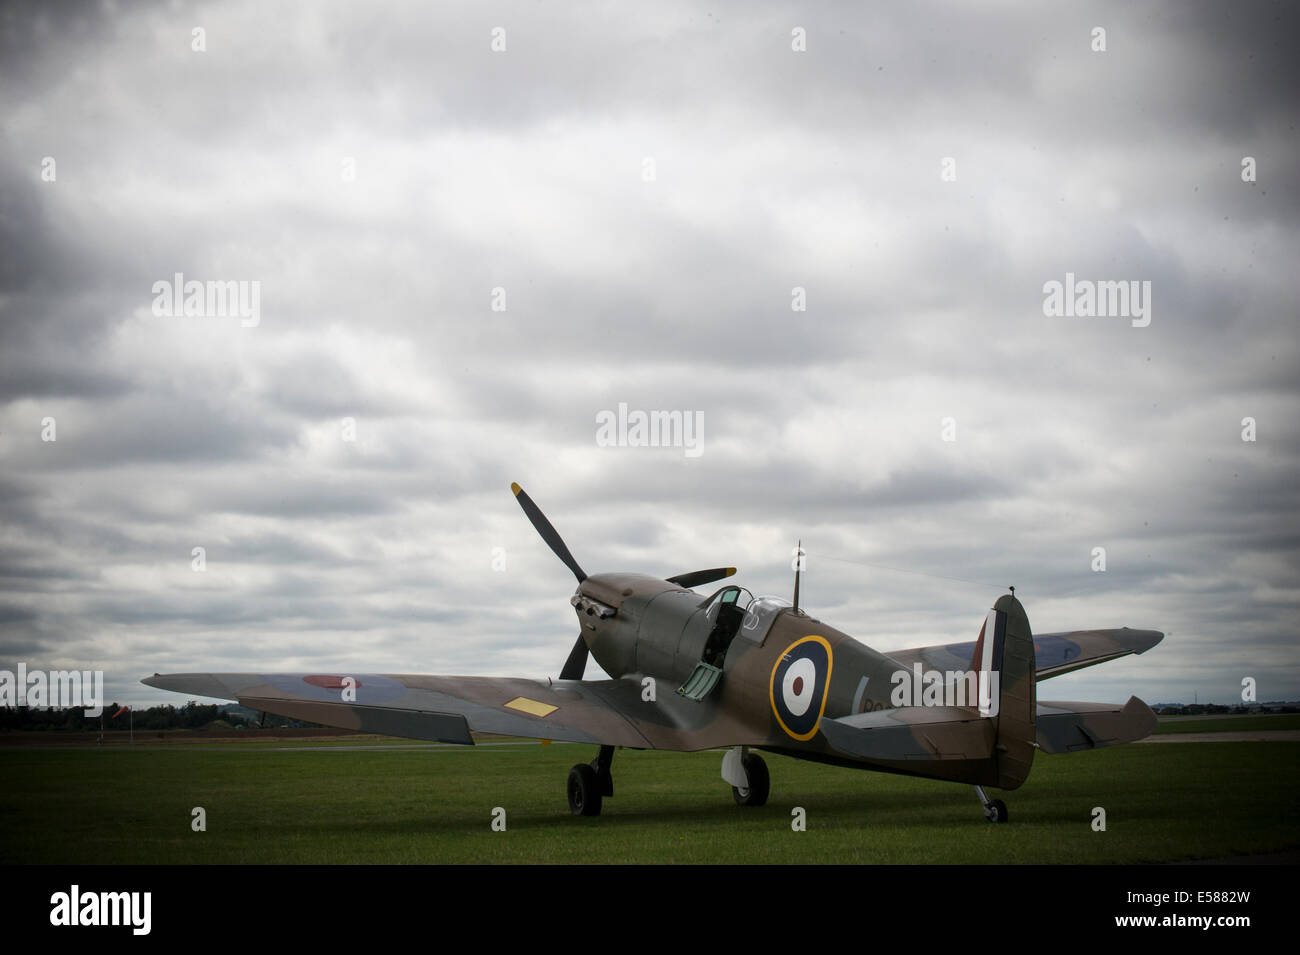 Mk1 Supermarine Spitfire P9374 Flying again after being restored.The Spitfire was shot down over Calais in 1940 - Stock Image